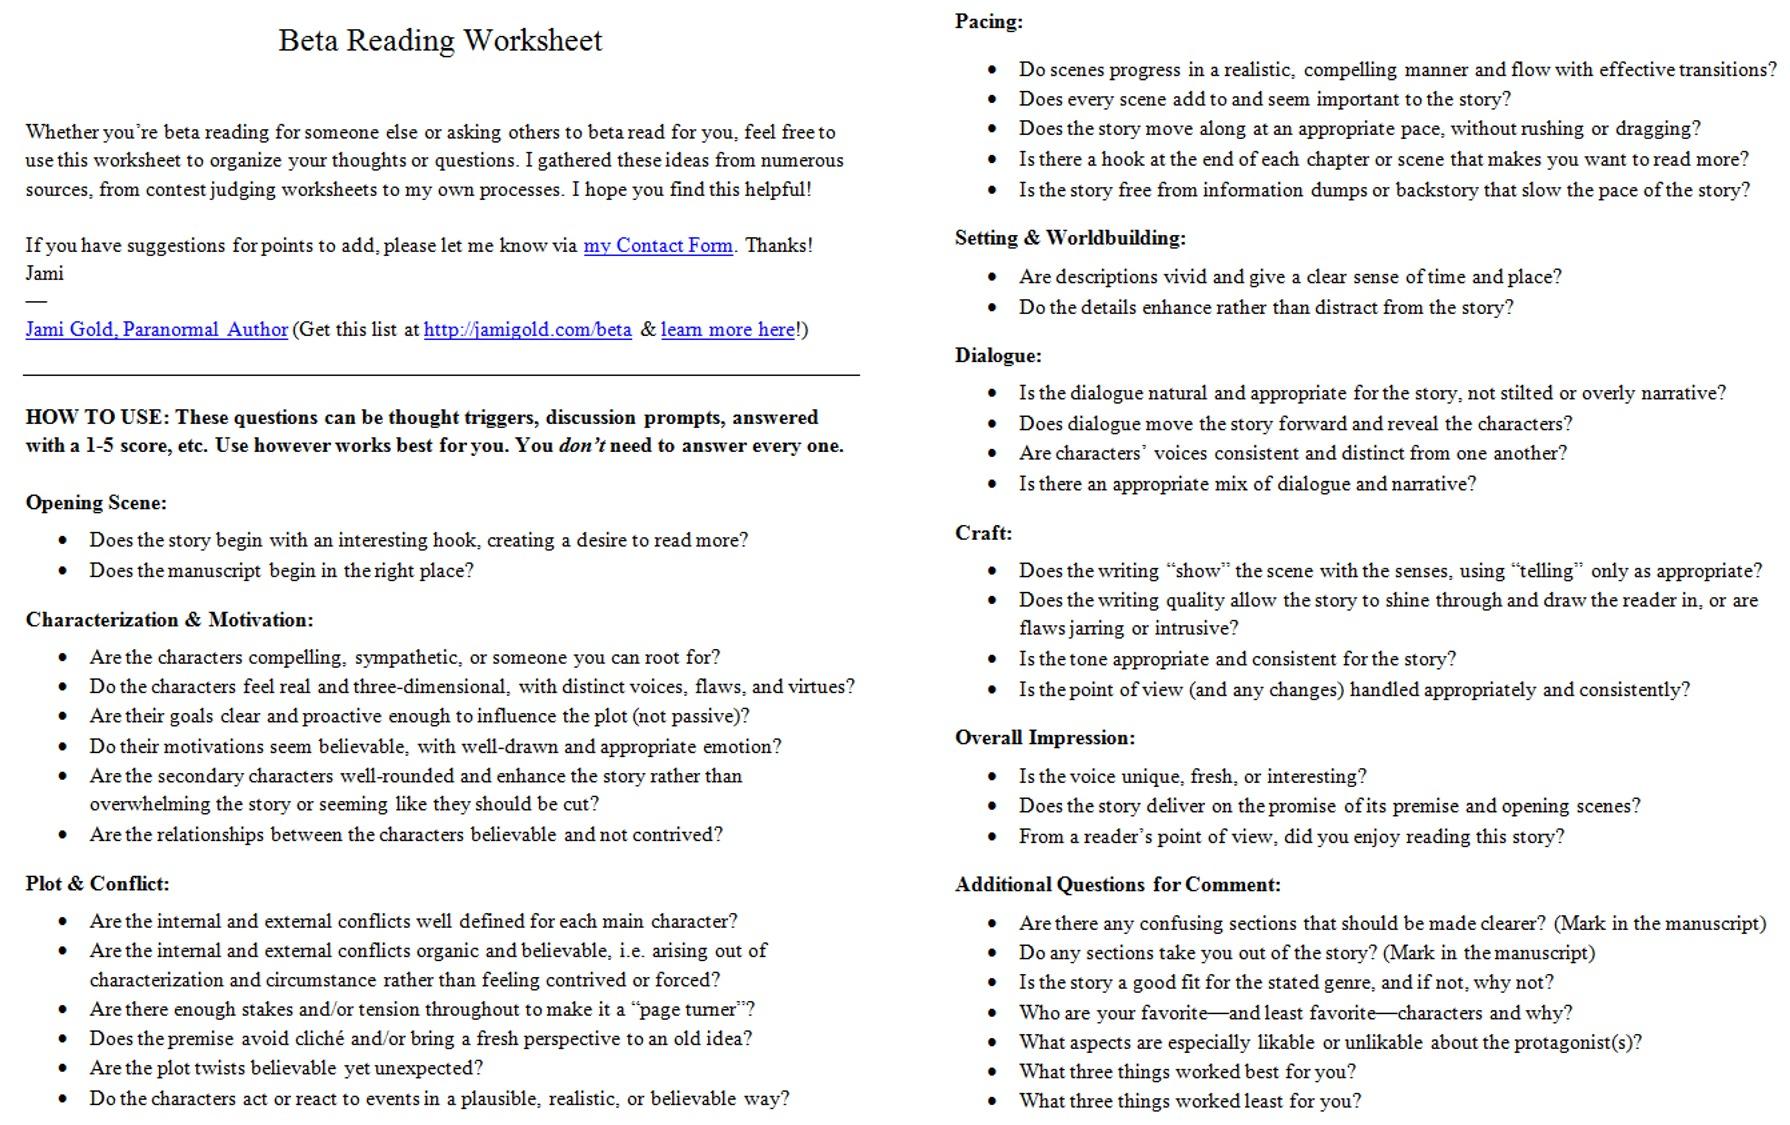 Worksheets Six Pillars Of Character Worksheets worksheets for writers jami gold paranormal author screen shot of the two page beta reading worksheet